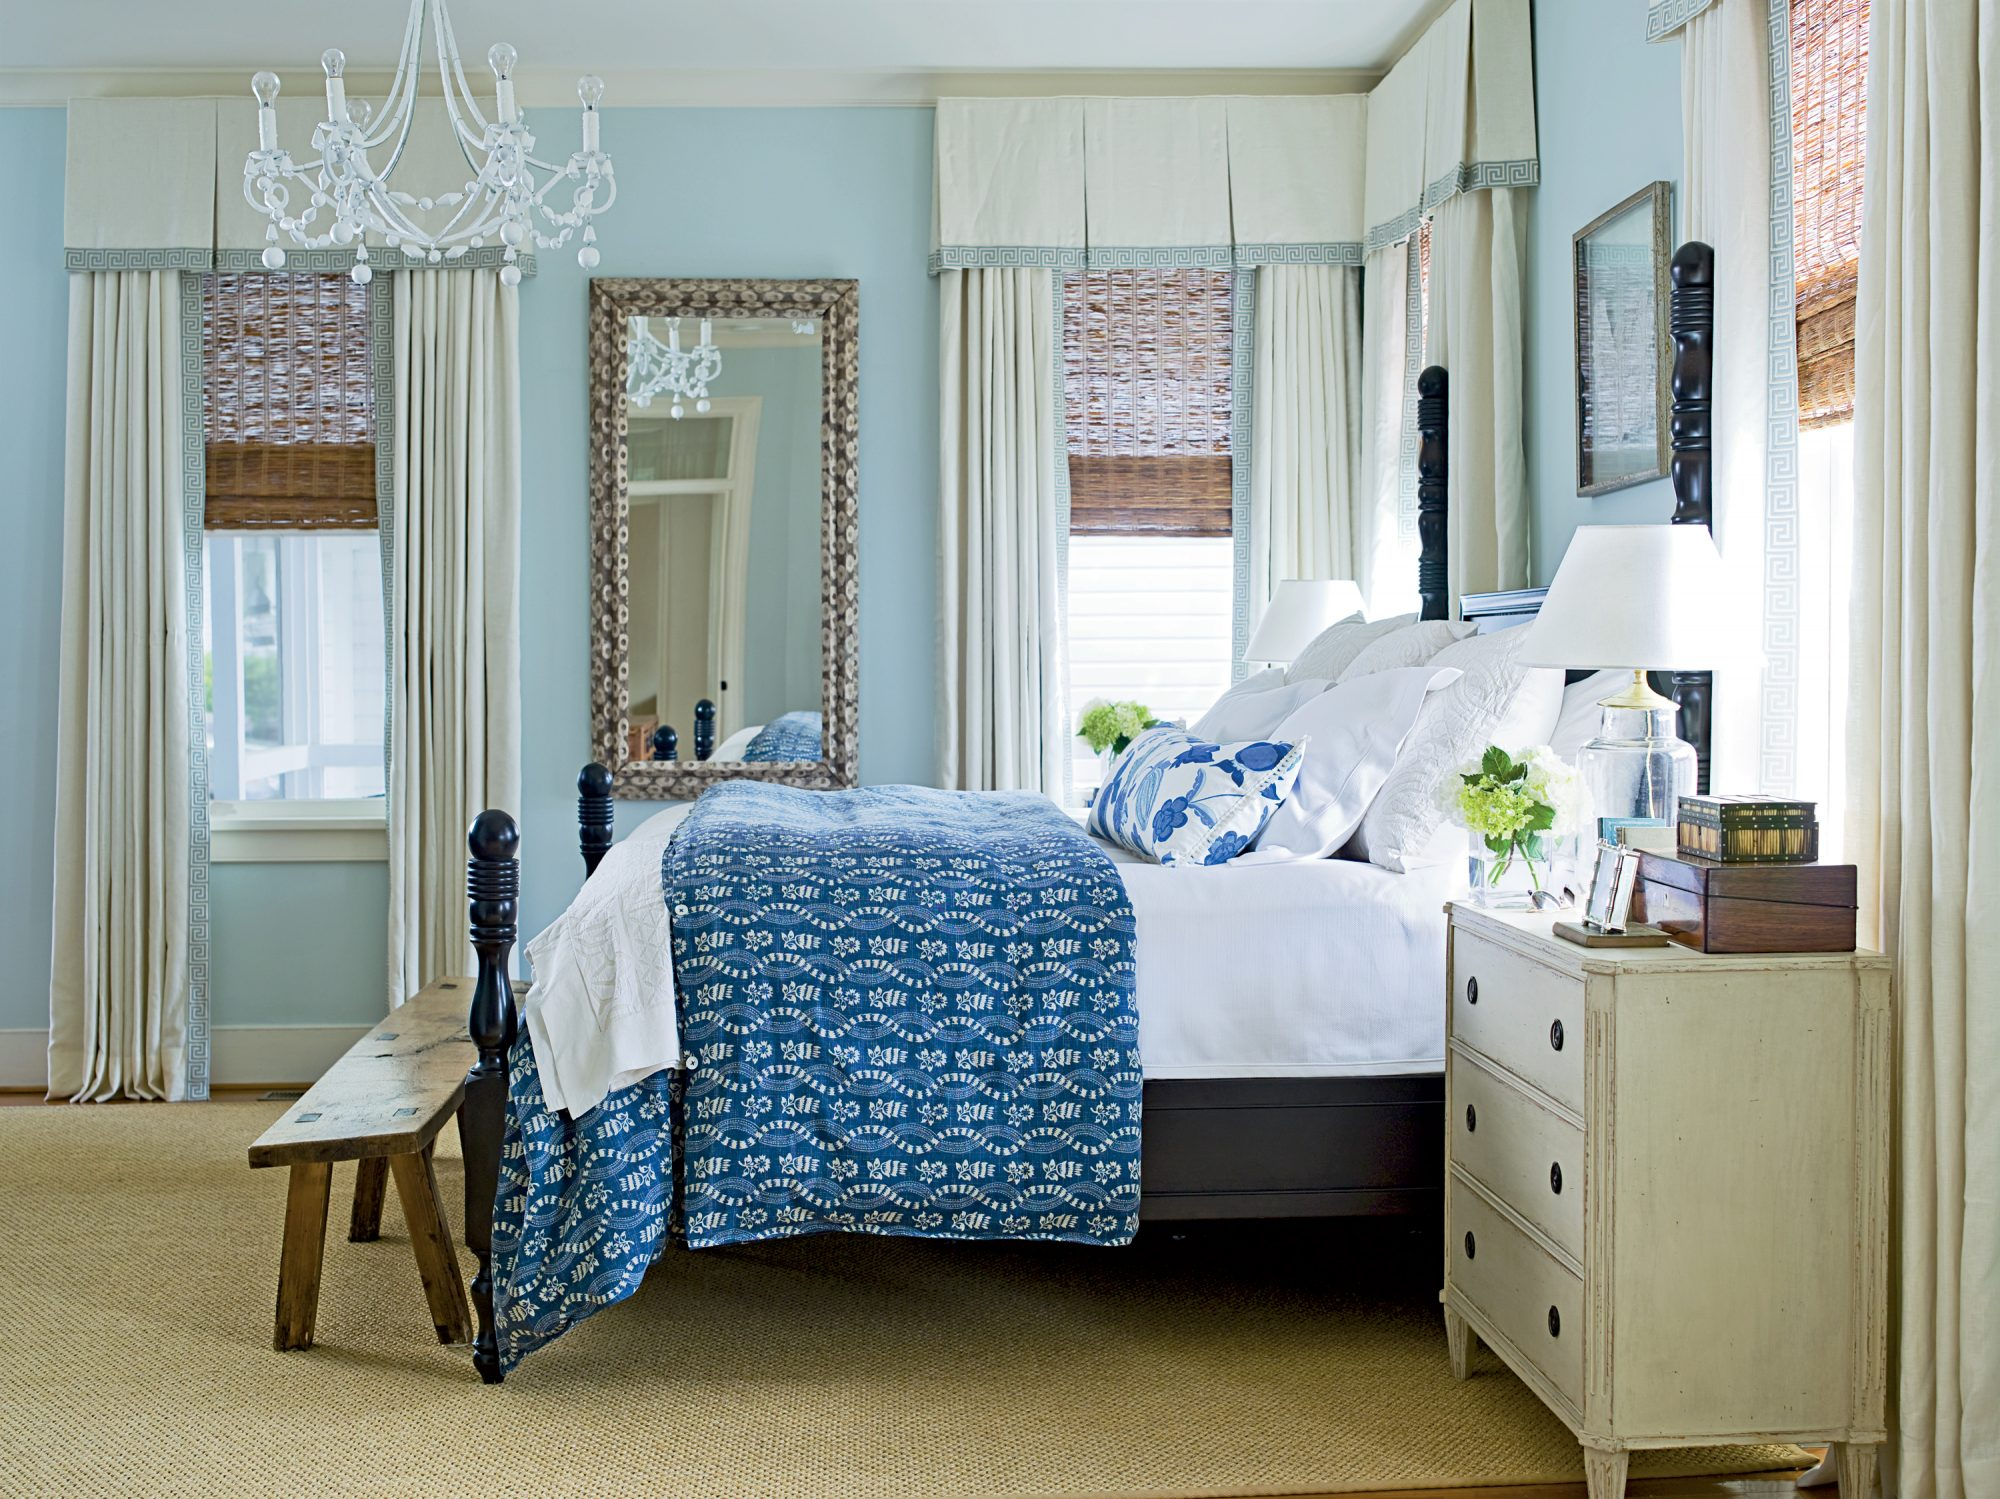 This 1915 cottage on the Charleston Harbor got a colorful makeover, complete with a relaxing blue bedroom. The soft azure walls set the tone, while window treatments trimmed with a Greek key pattern elevate the look. Natural accents like bamboo blinds, a